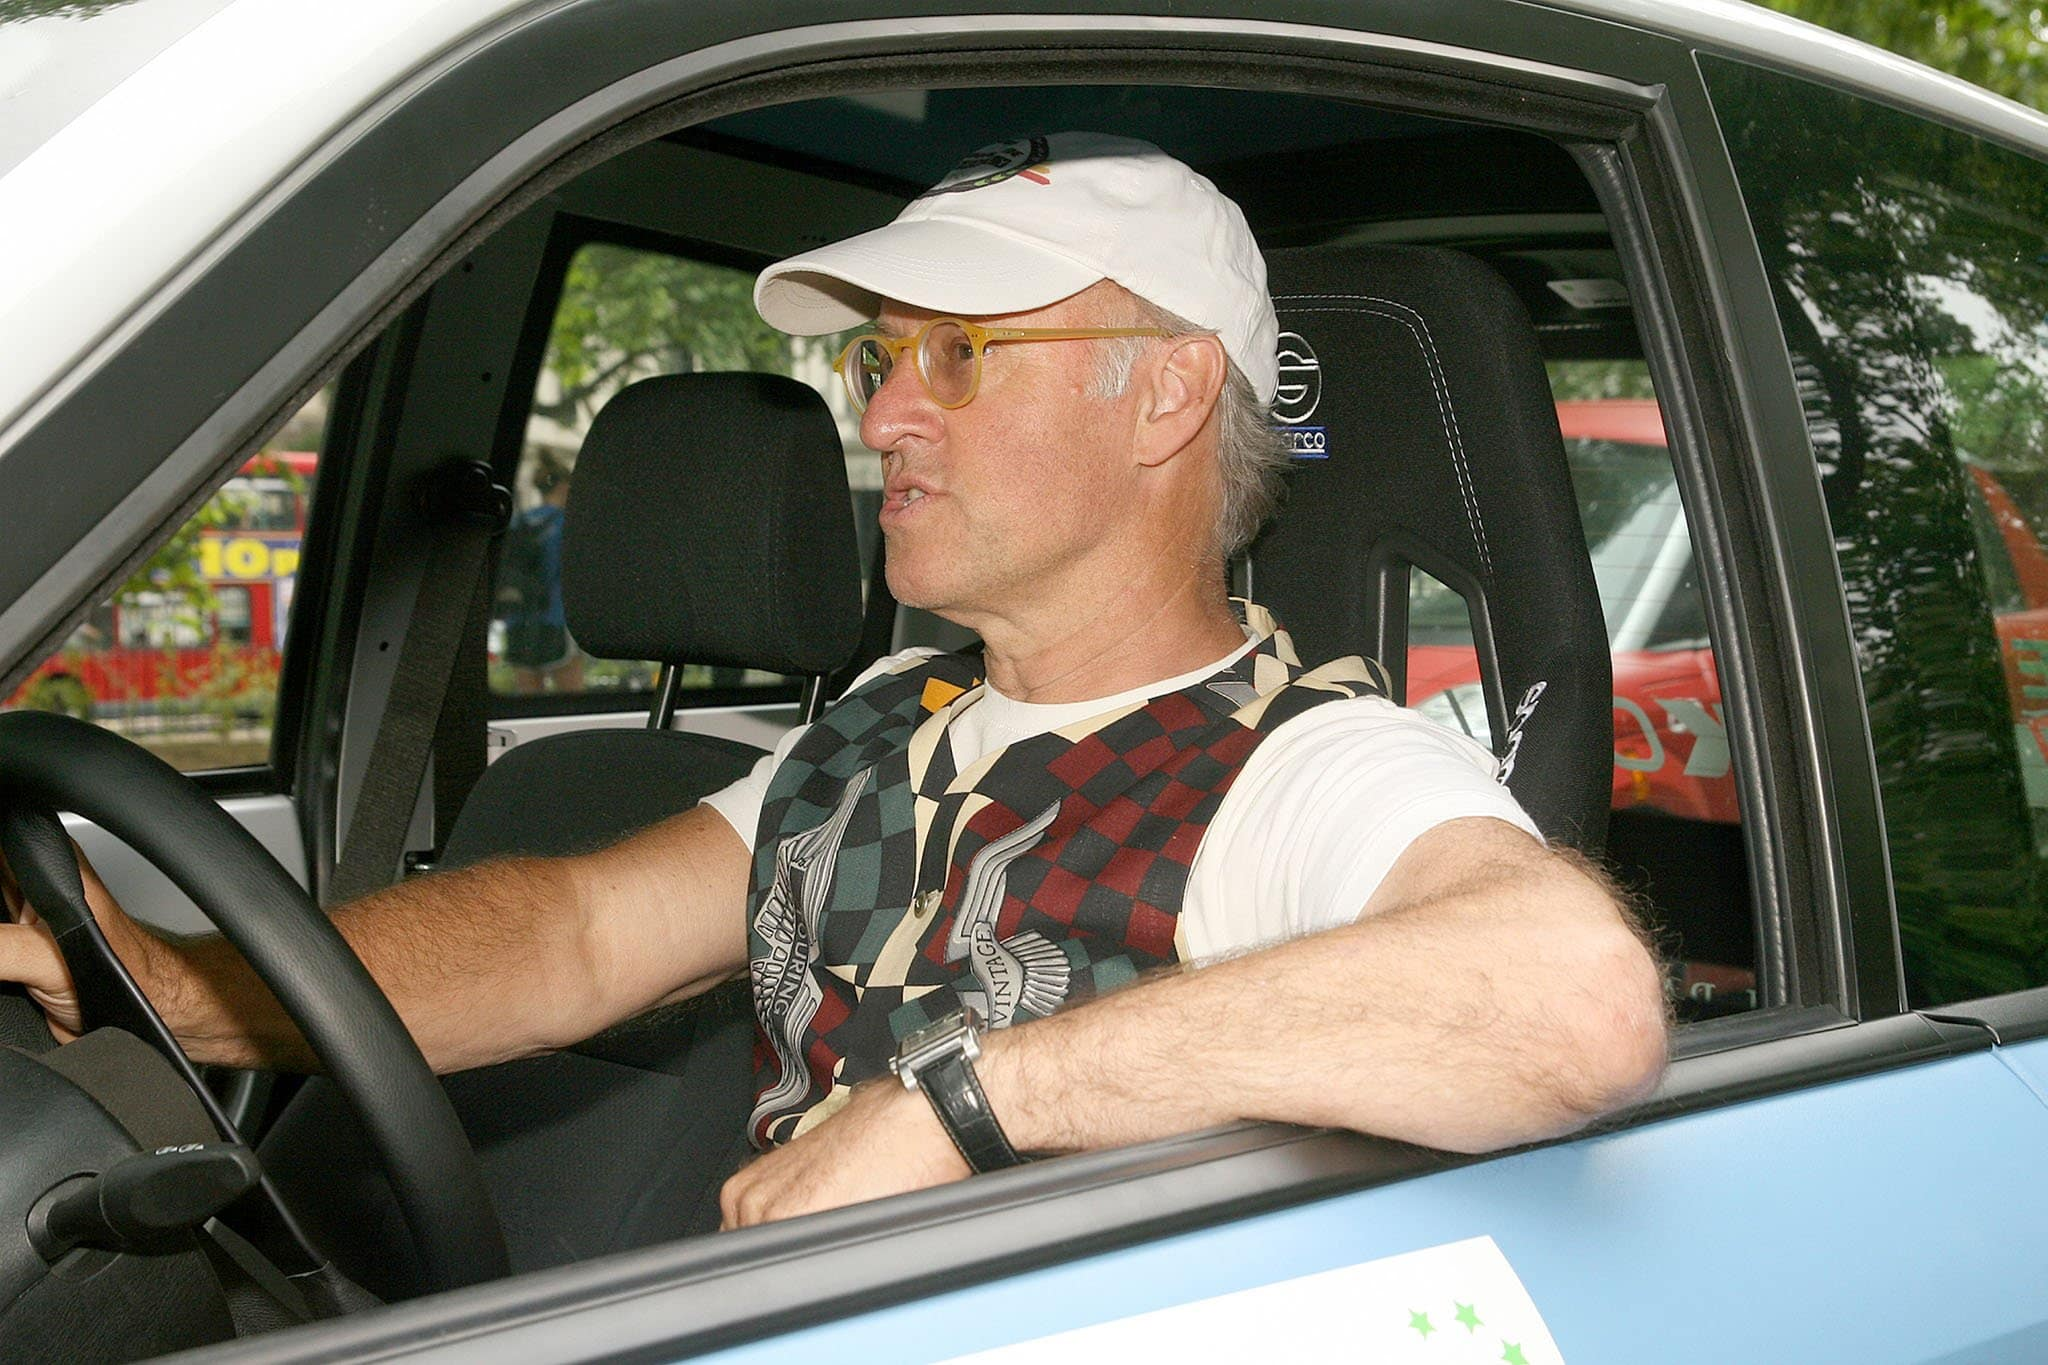 Roger Saul, founder of Mulberry fashion label, driving an electric car during the 2010 Brighton to London Eco Rally on July 7, 2010